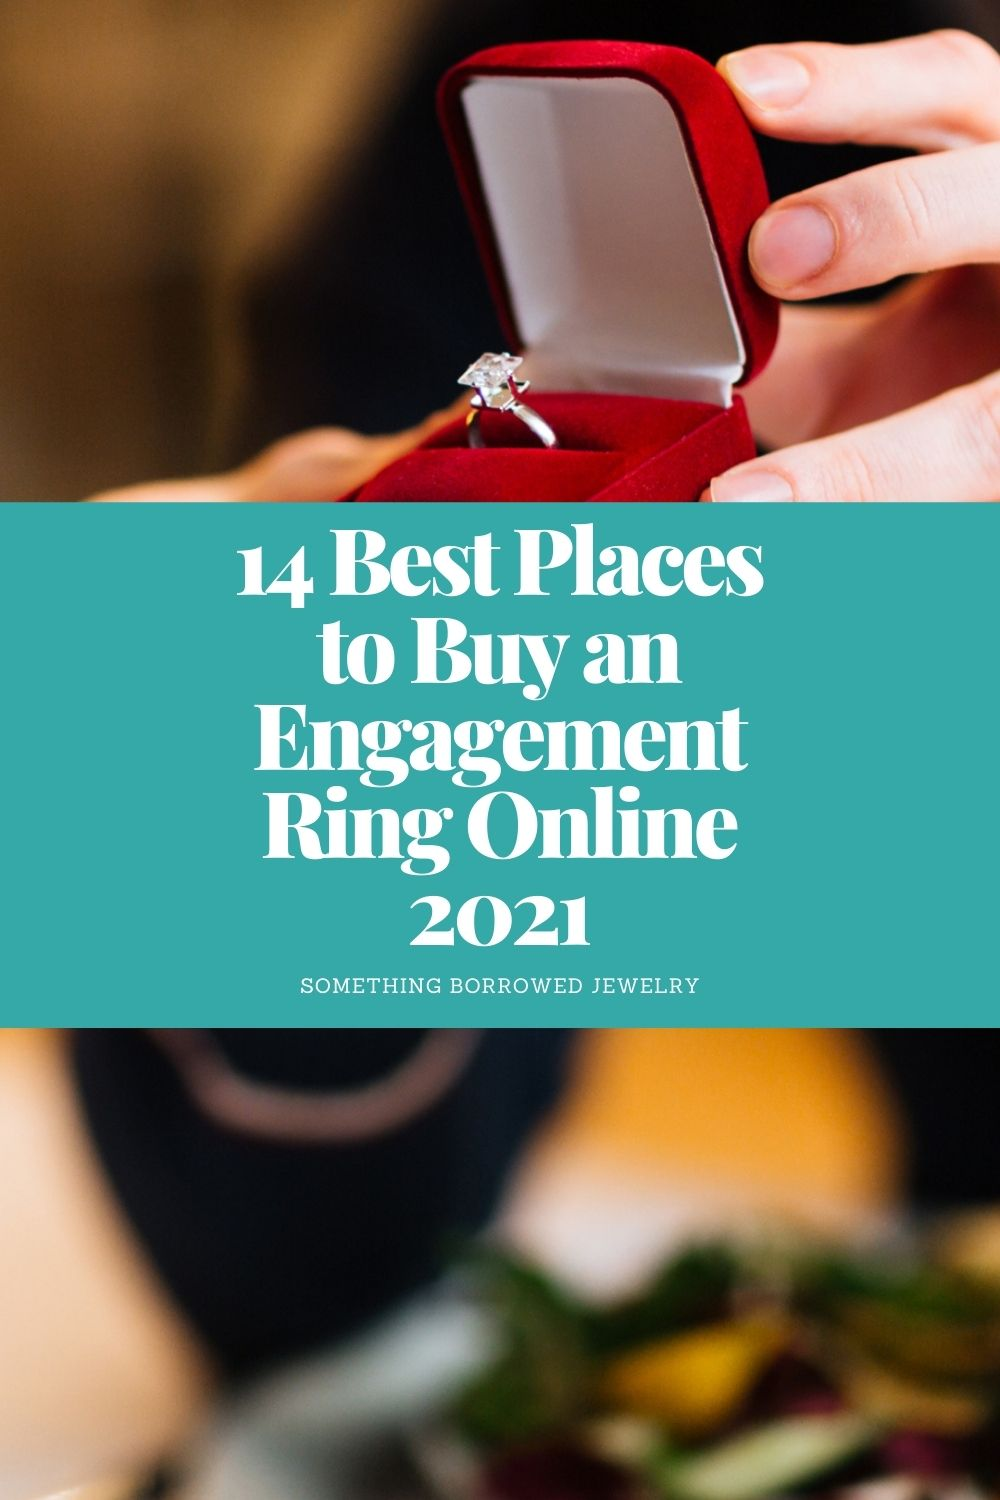 14 Best Places to Buy an Engagement Ring Online 2021 pin